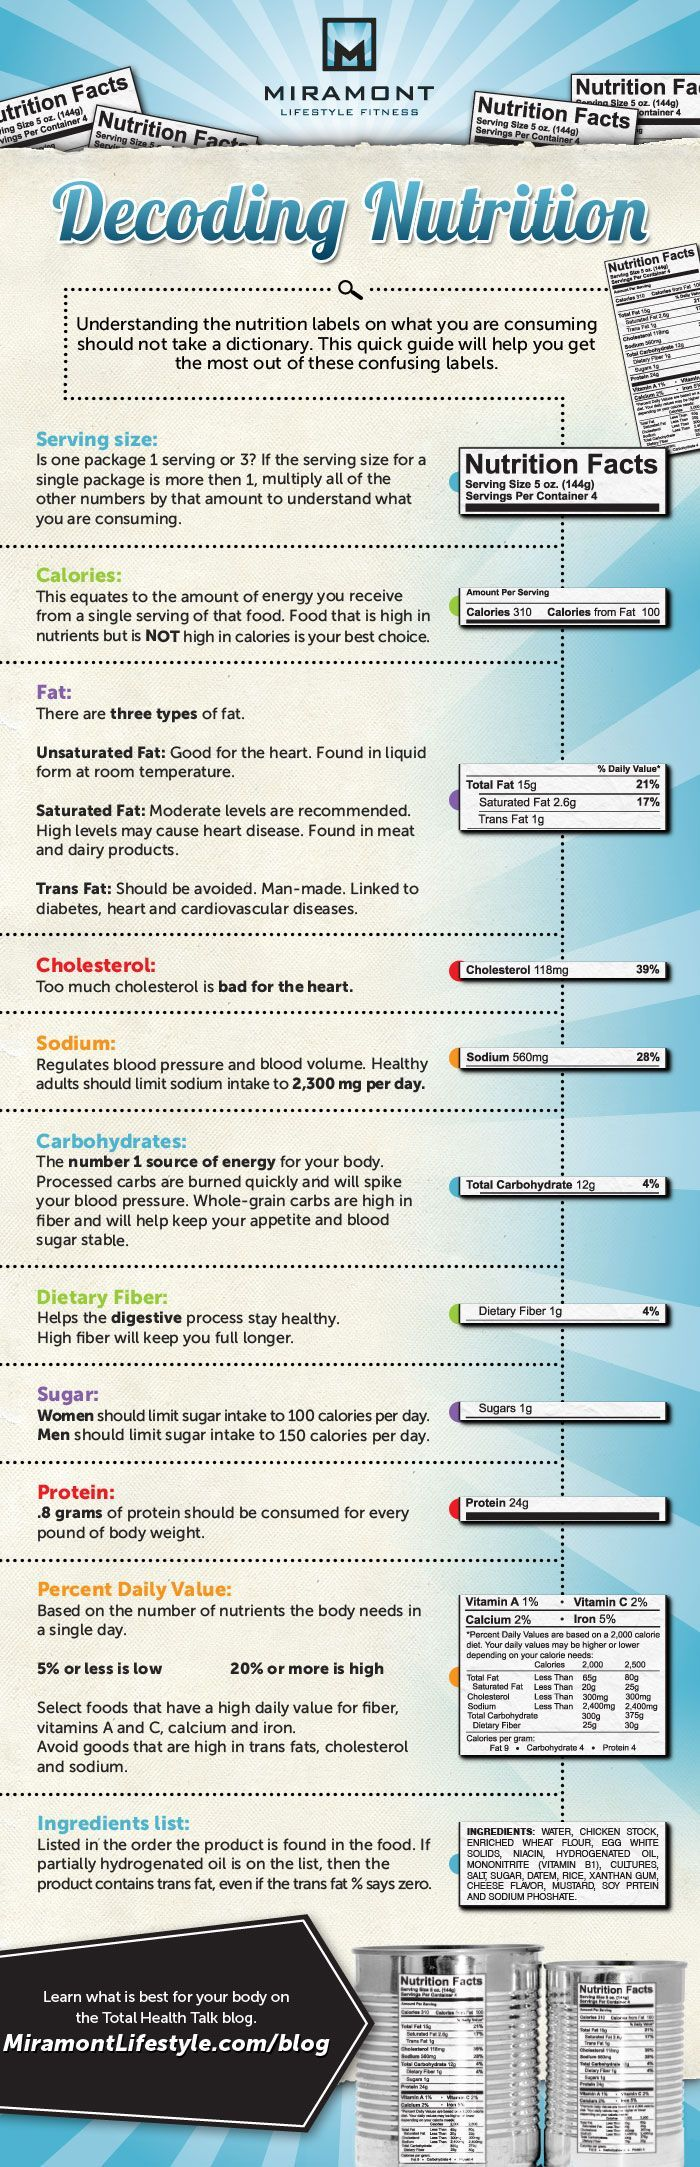 Decoding Nutrition Infographic.....know What You Are Eating! Read Labels!